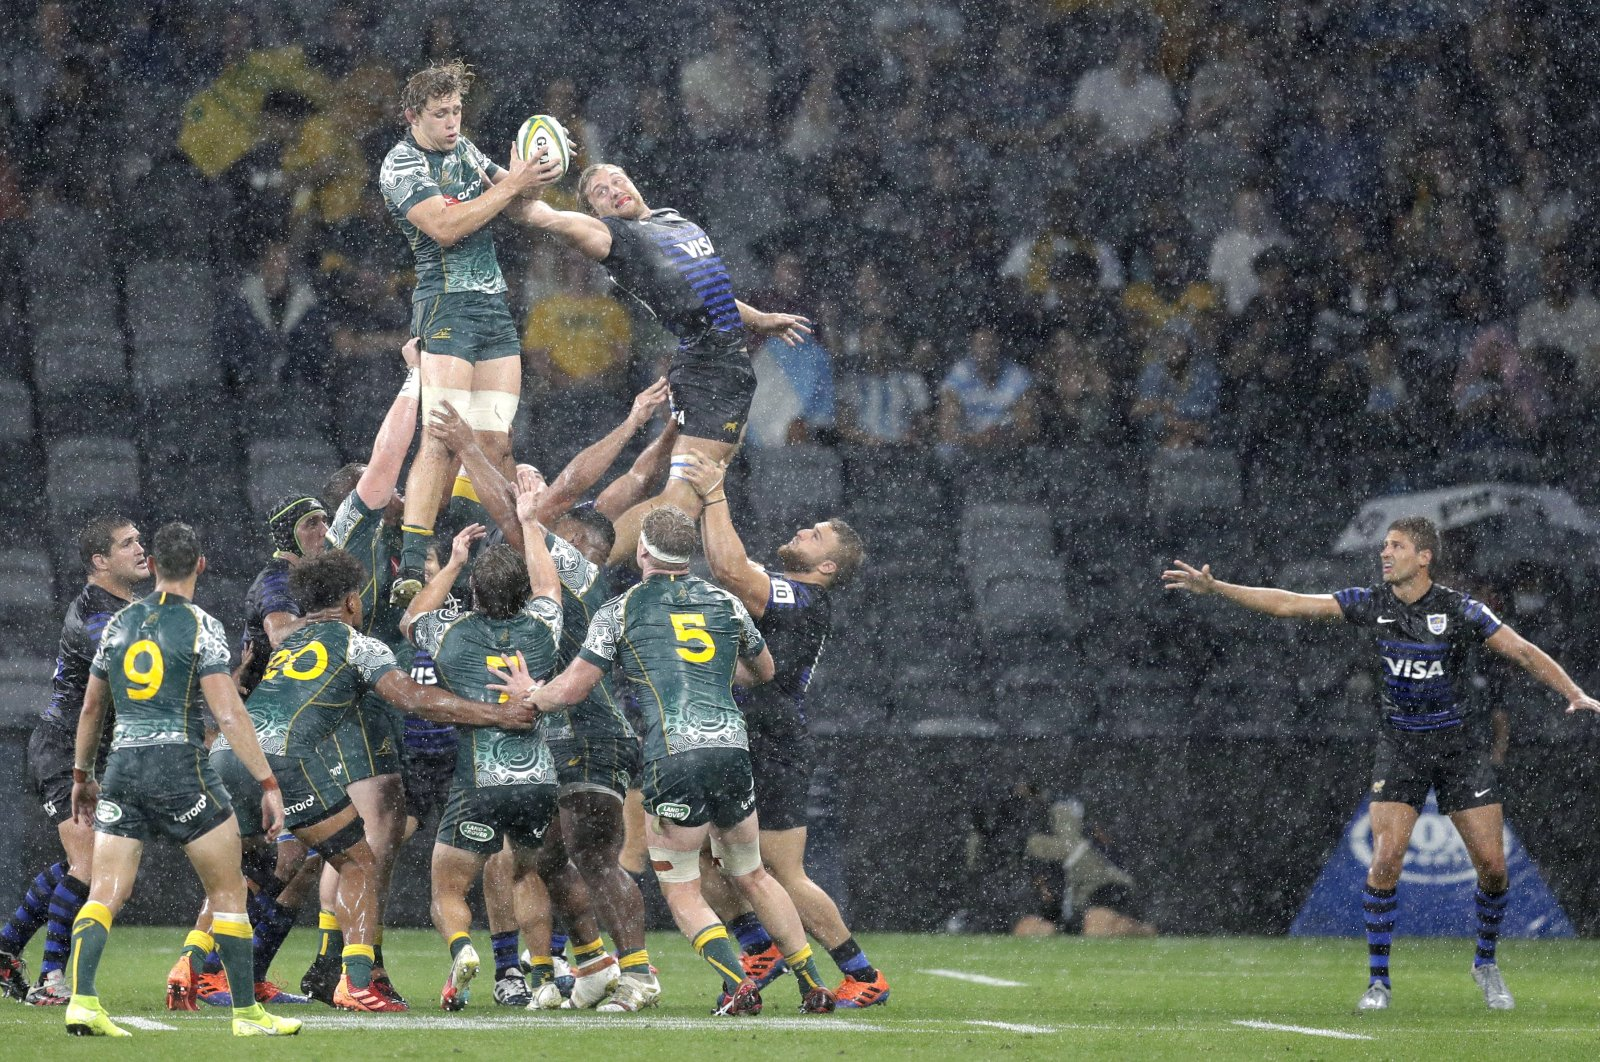 Australia and Argentina compete in a line out during their Tri-Nations rugby union match in Sydney, Australia, Dec. 5, 2020. (AP Photo)